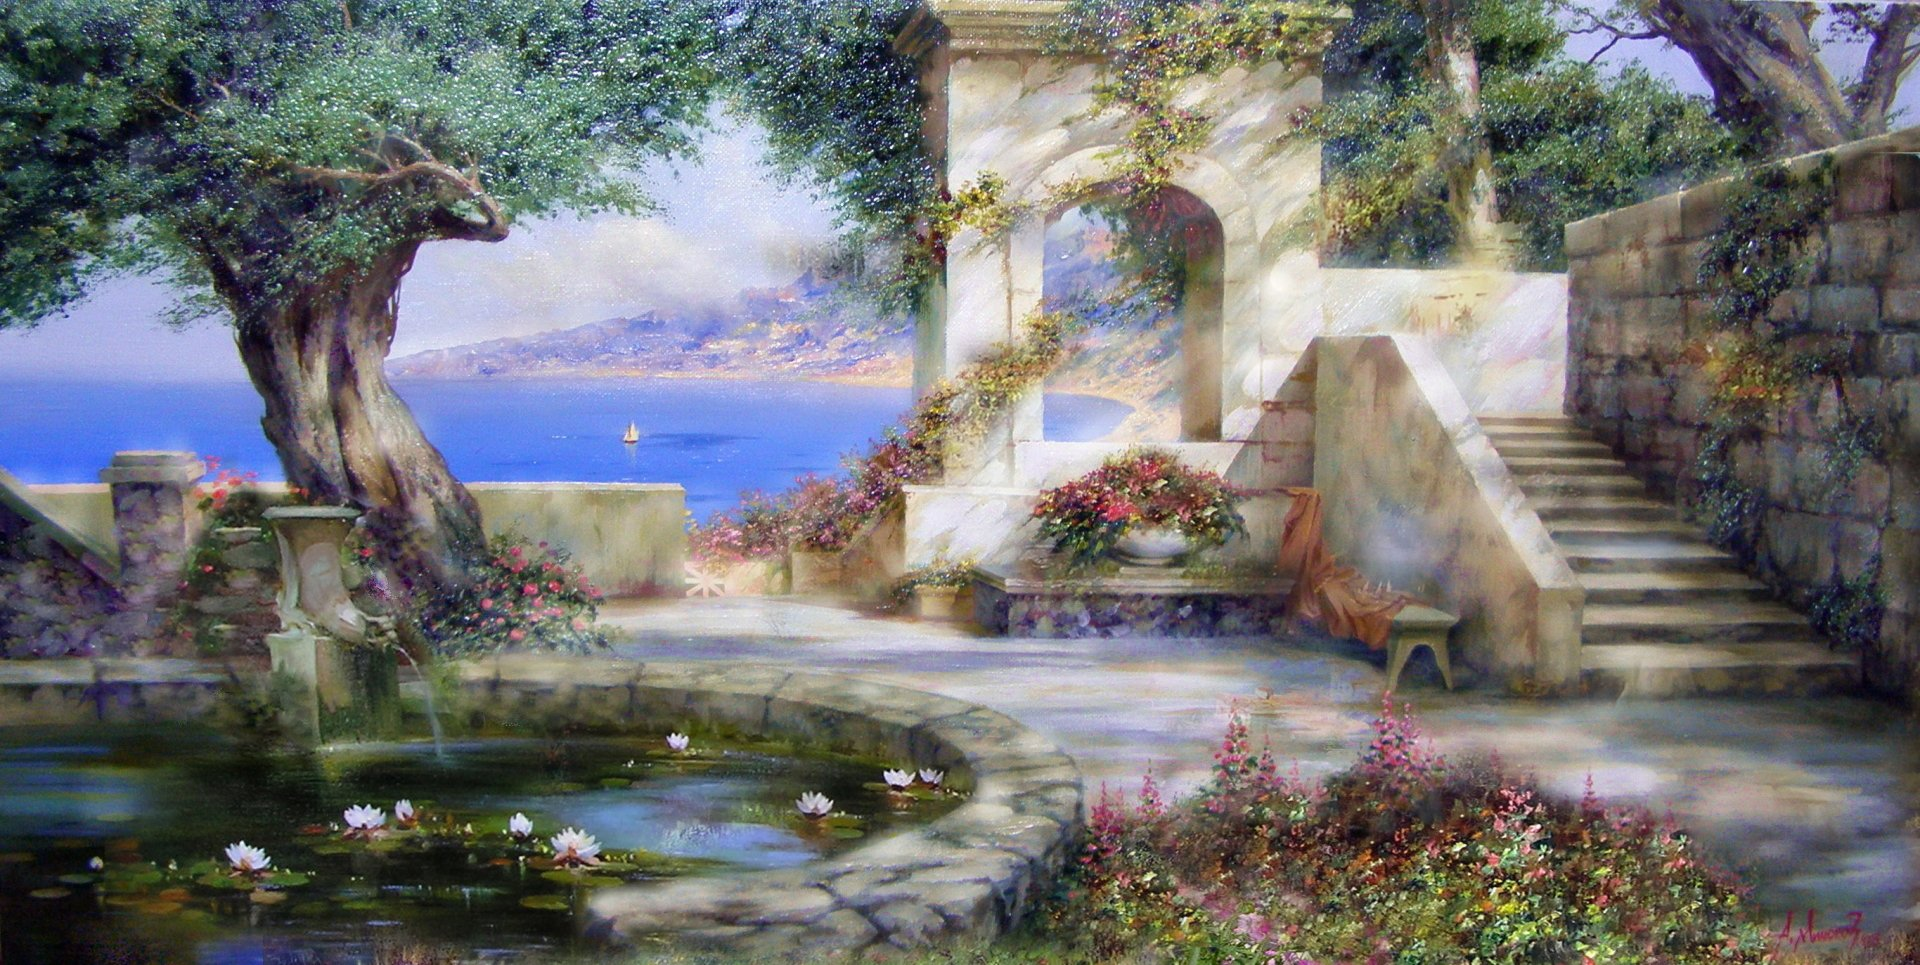 Wallpapers ID:169177